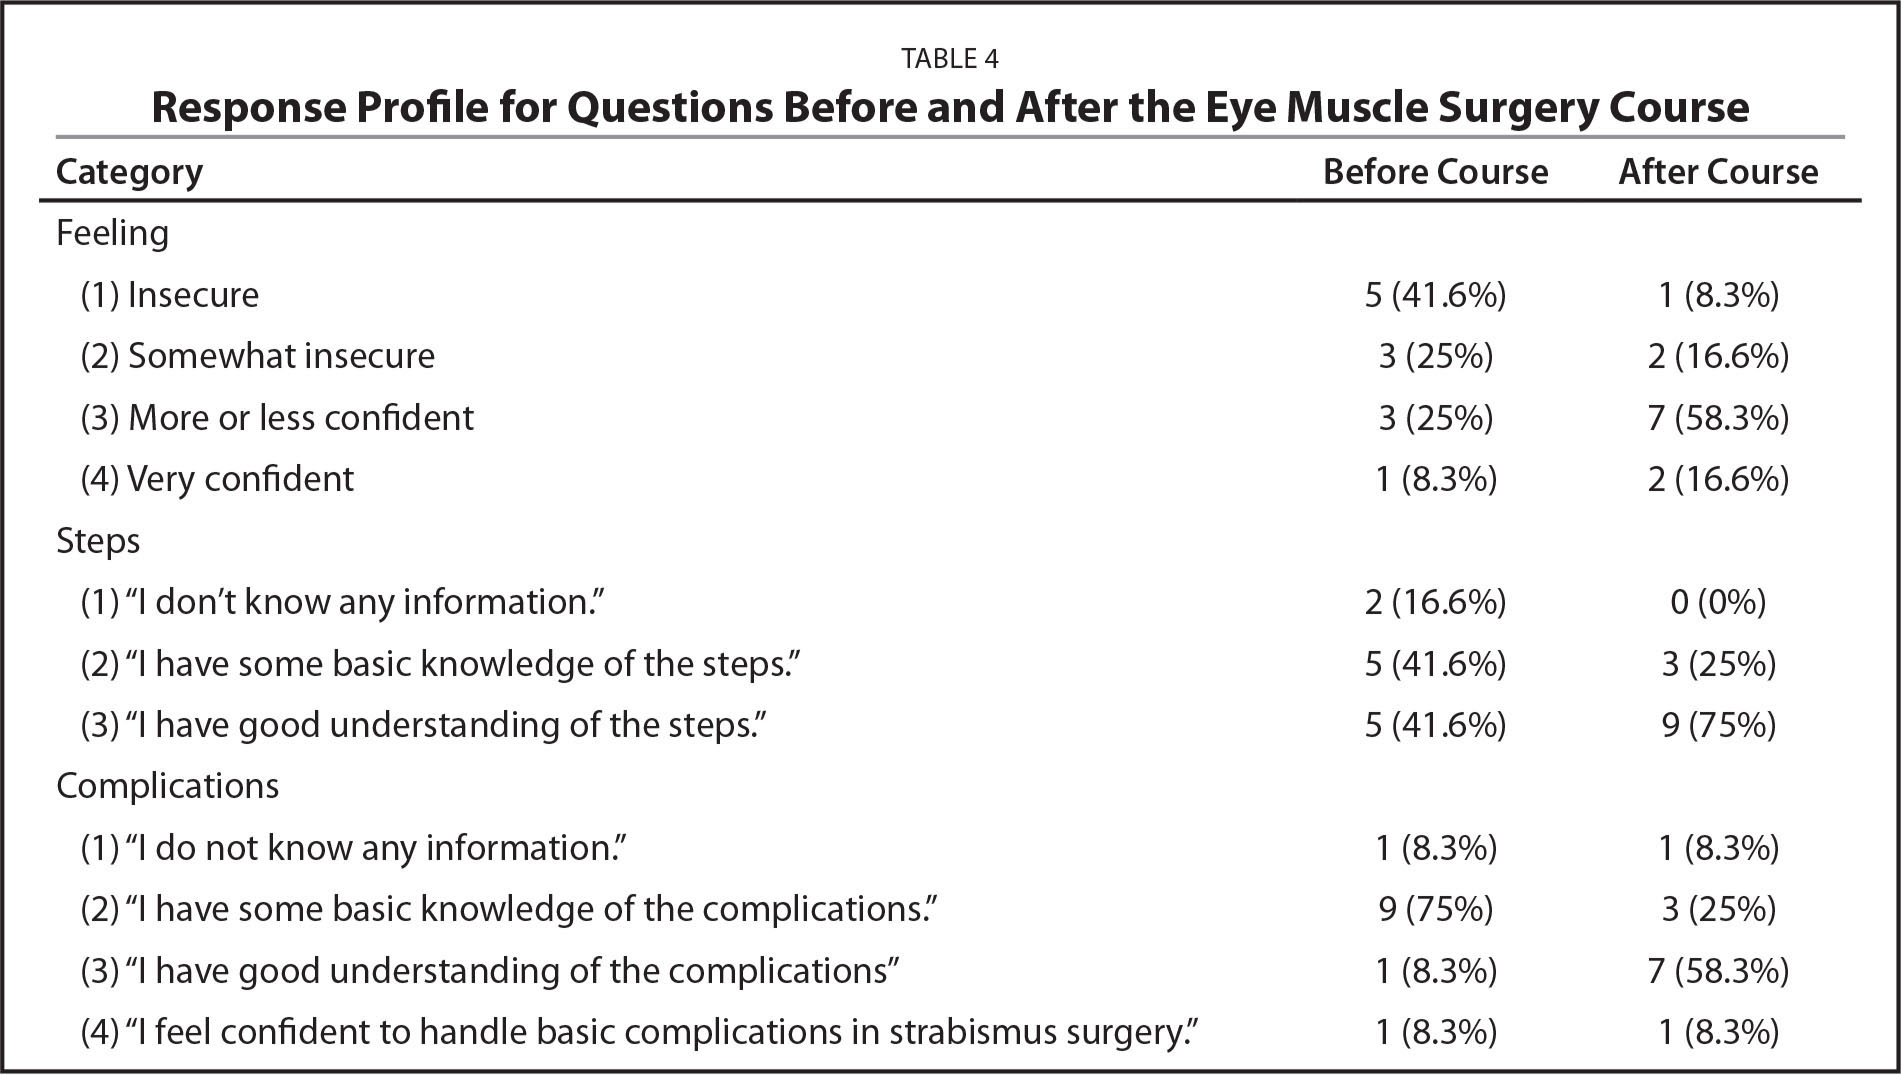 Response Profile for Questions Before and After the Eye Muscle Surgery Course